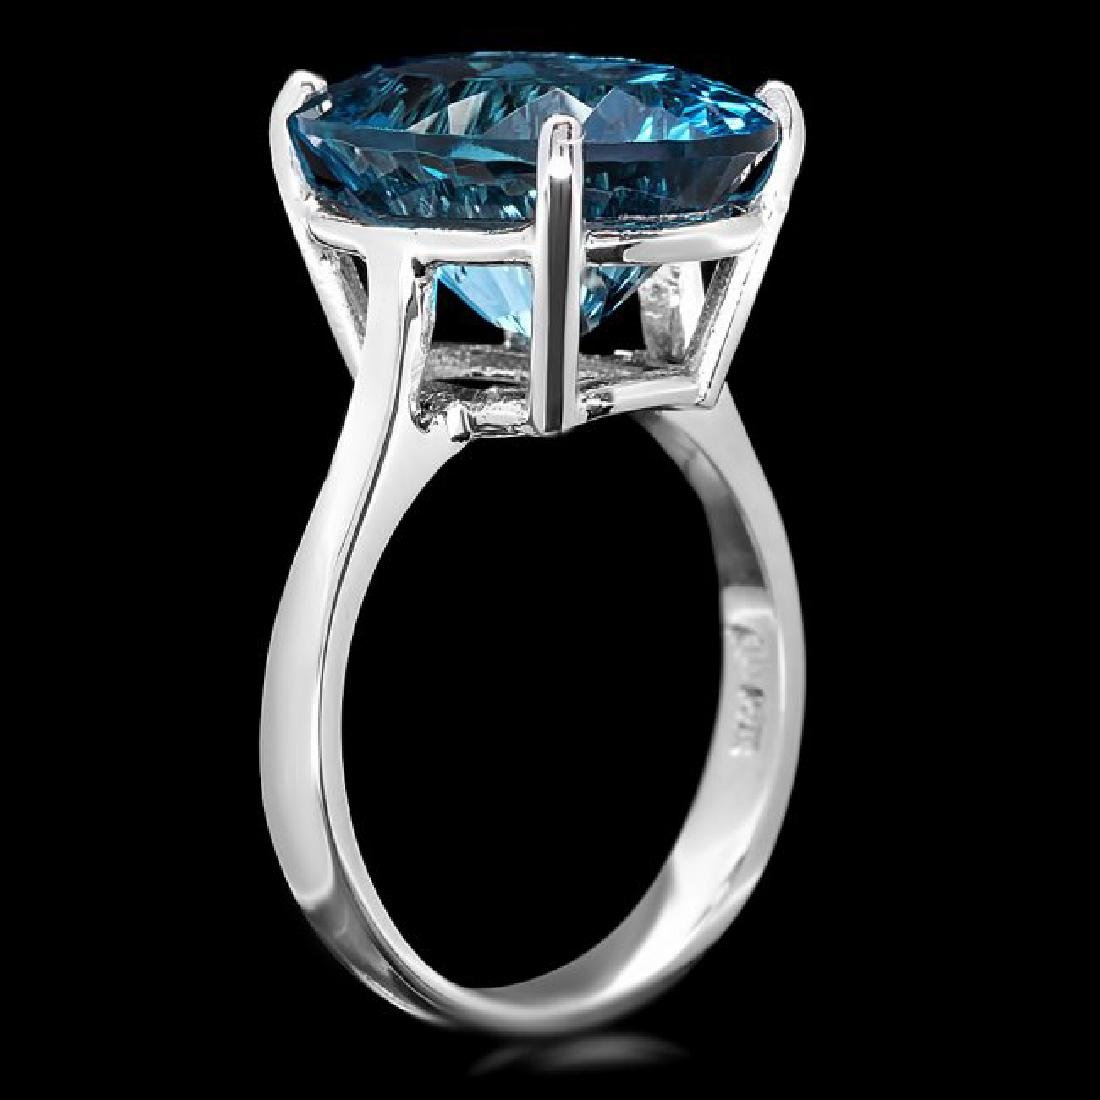 14k White Gold 10.00ct Topaz Ring - 3